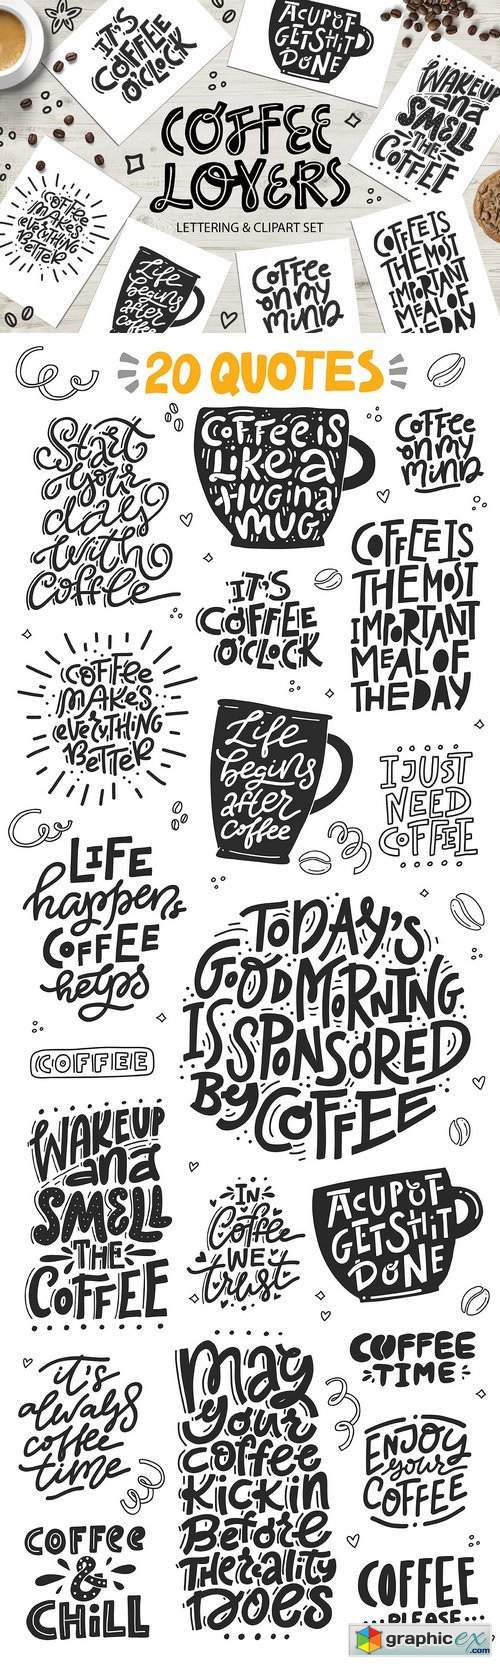 Coffee Lovers - cliart & lettering